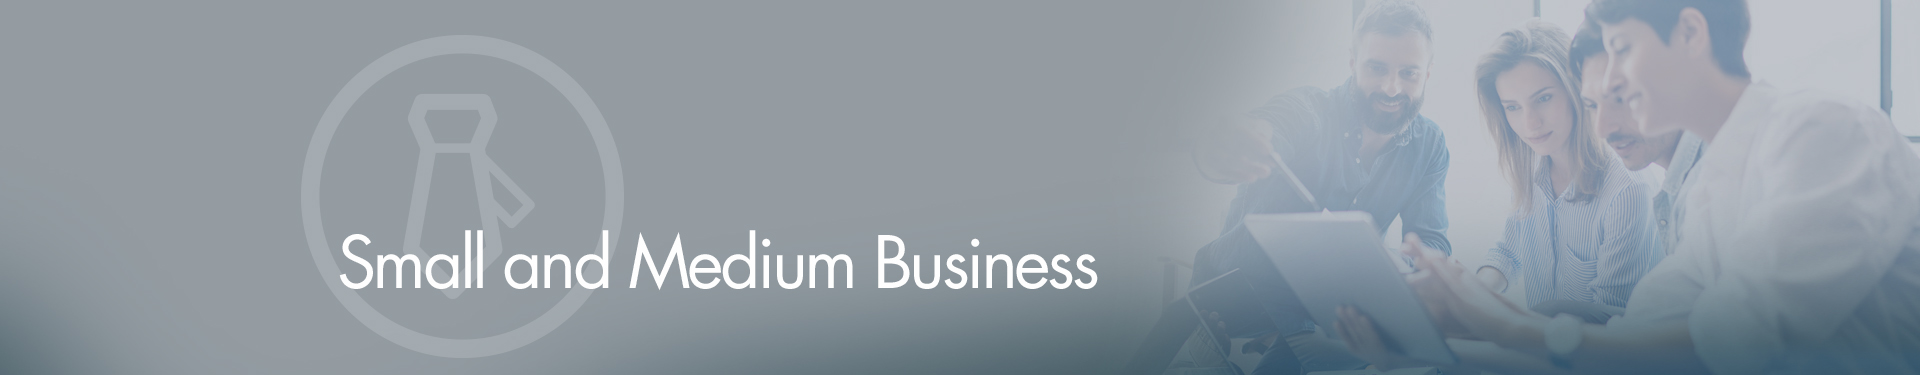 IT Solutions For Small and Medium Business